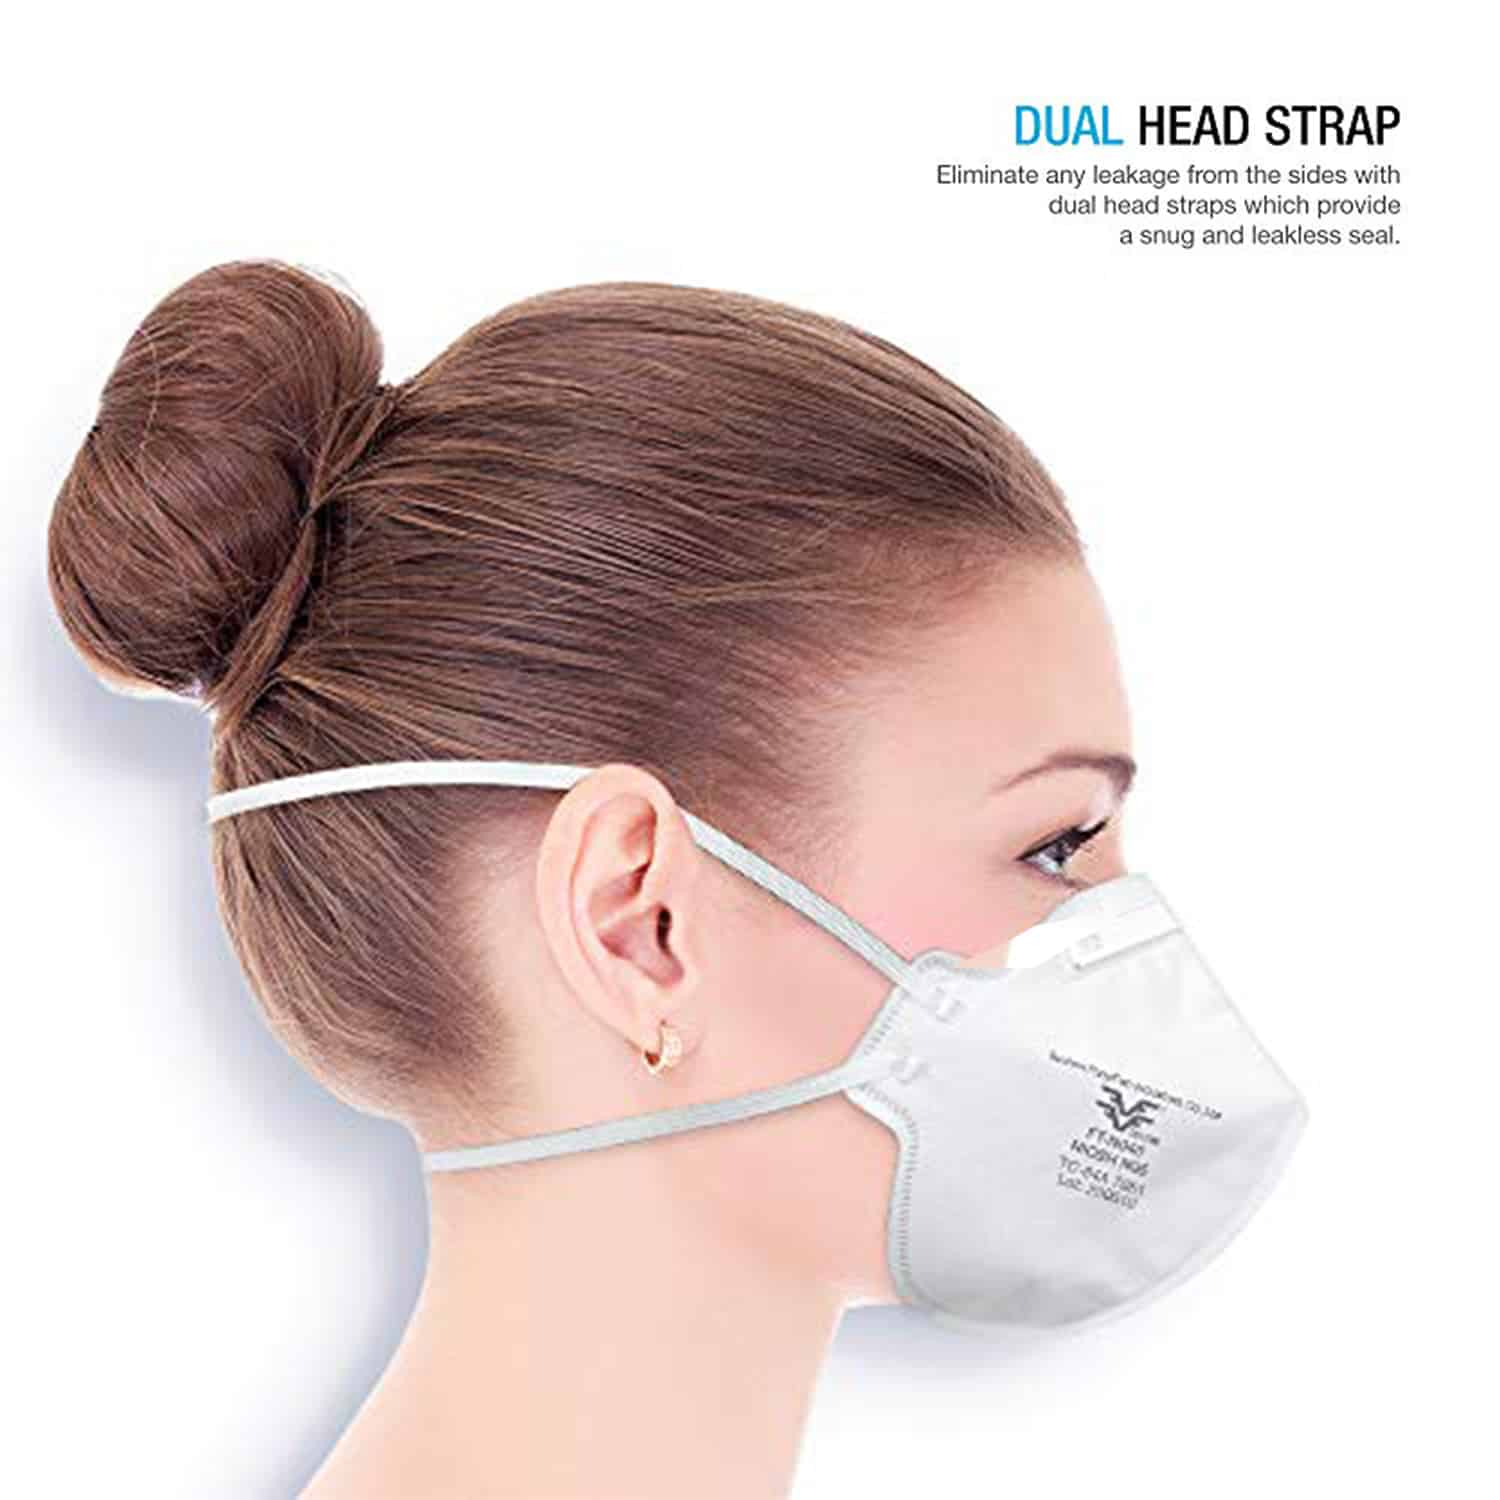 N95 mask made in united states